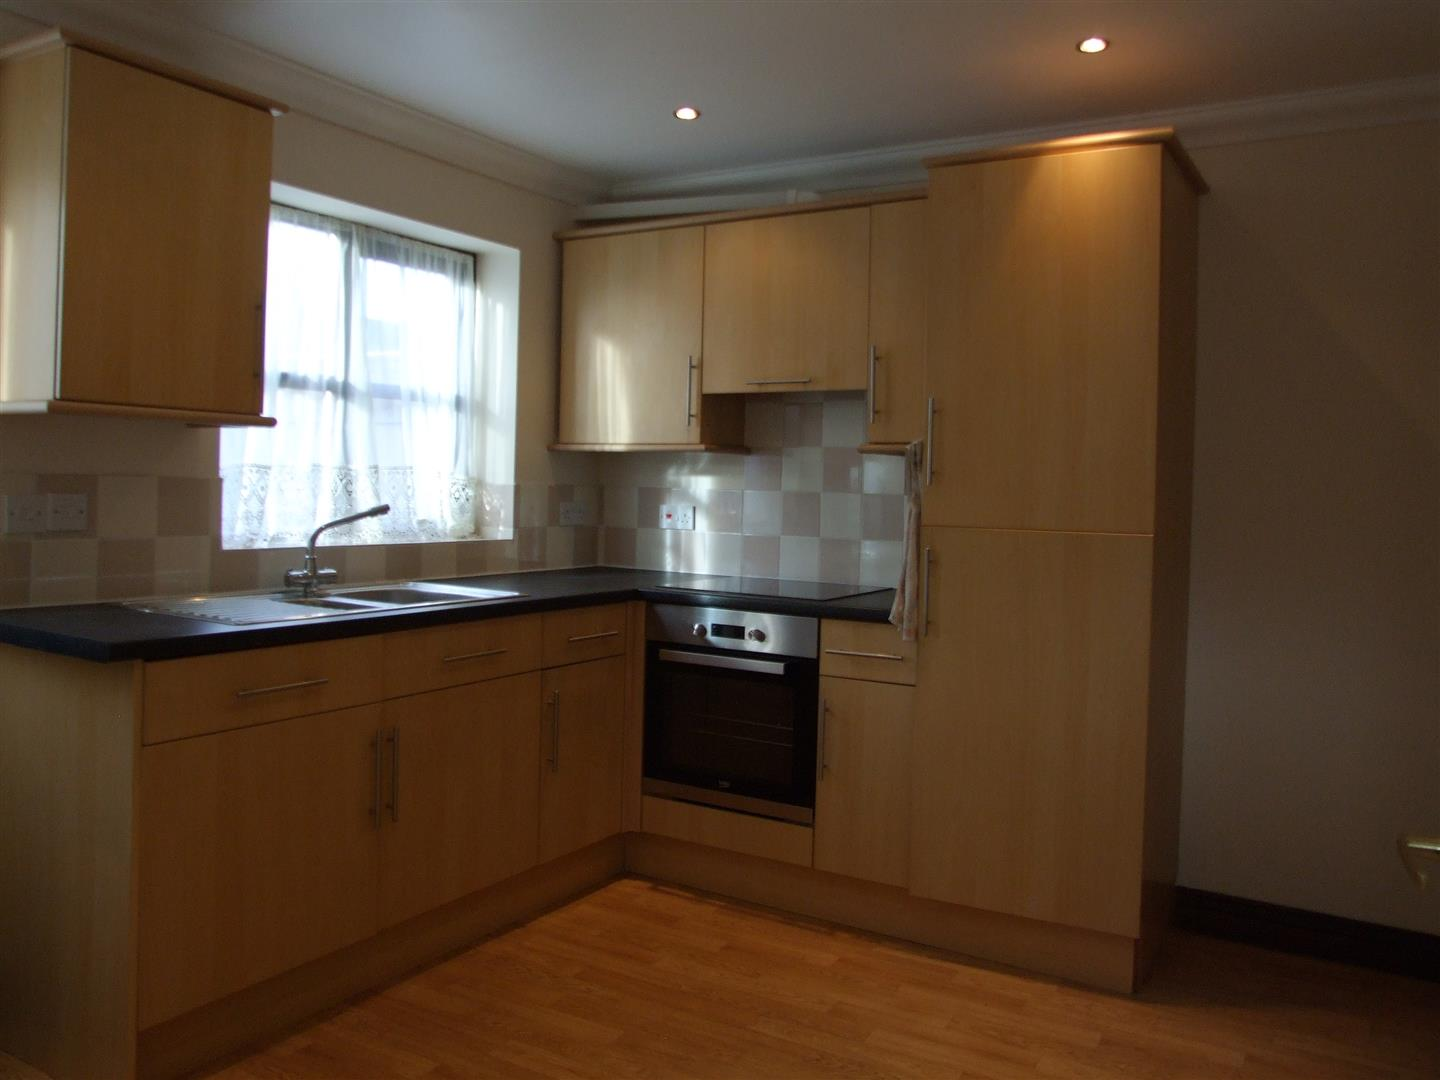 3 bed house to rent in Sutton Bridge Spalding, PE12 9UF  - Property Image 3